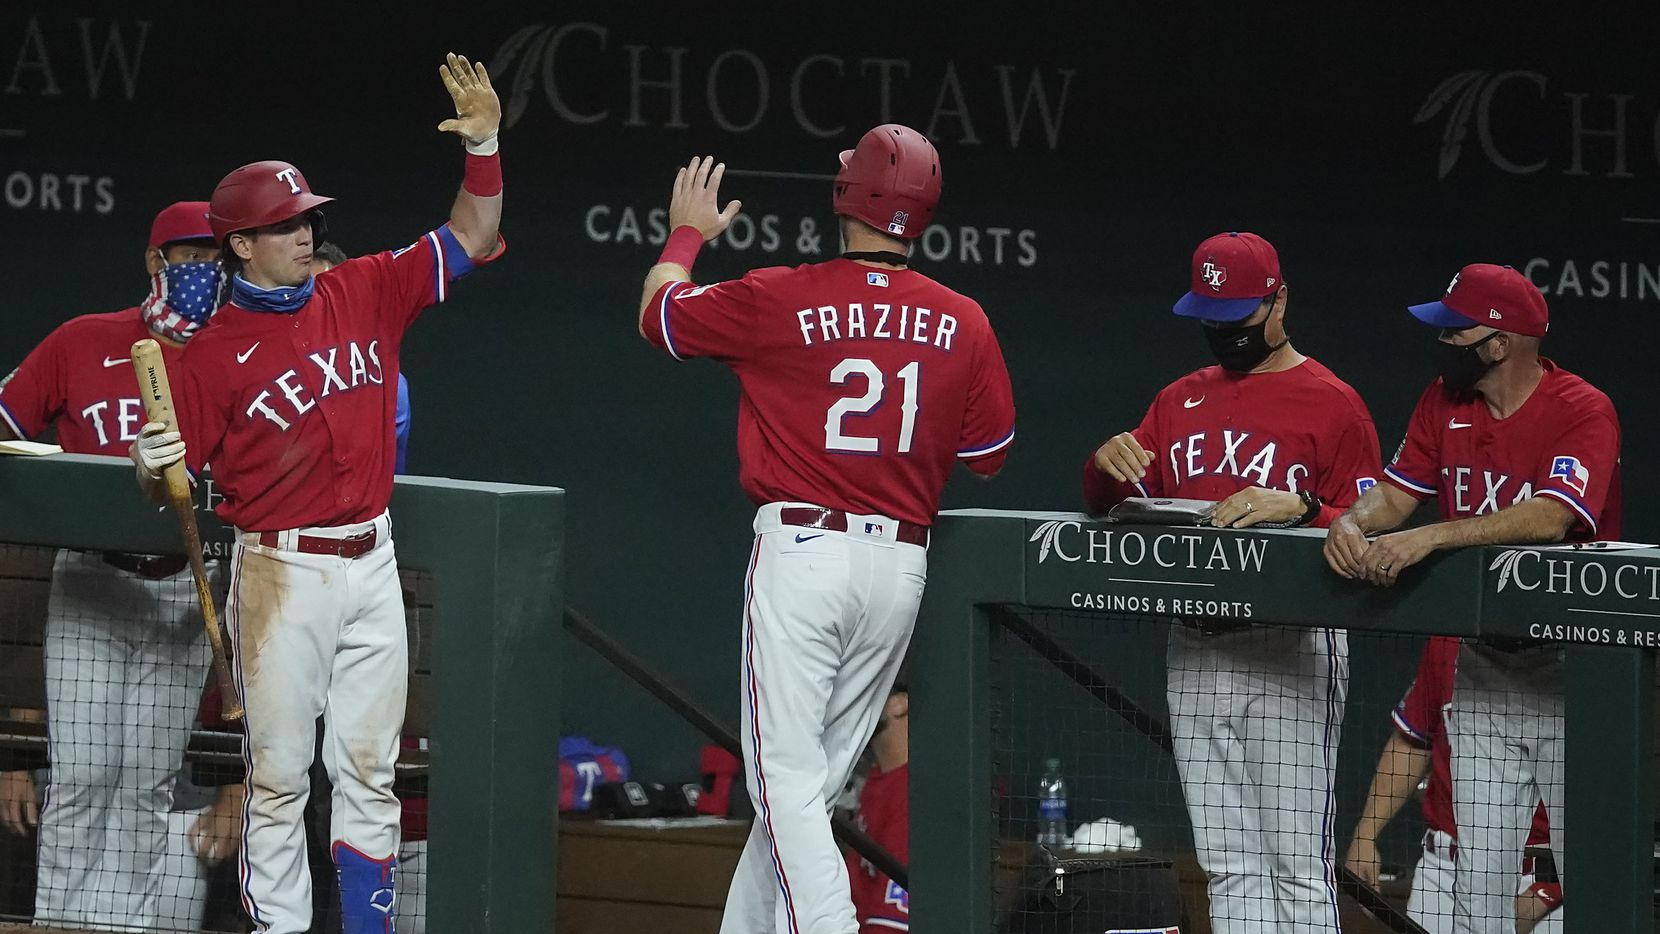 Texas Rangers third baseman Todd Frazier gets a socially distanced high five from outfielder Nick Solak after scoring on a bases-loaded walk by Los Angeles Angels starting pitcher Griffin Canning during the fourth inning at Globe Life Field on Friday, Aug. 7, 2020.